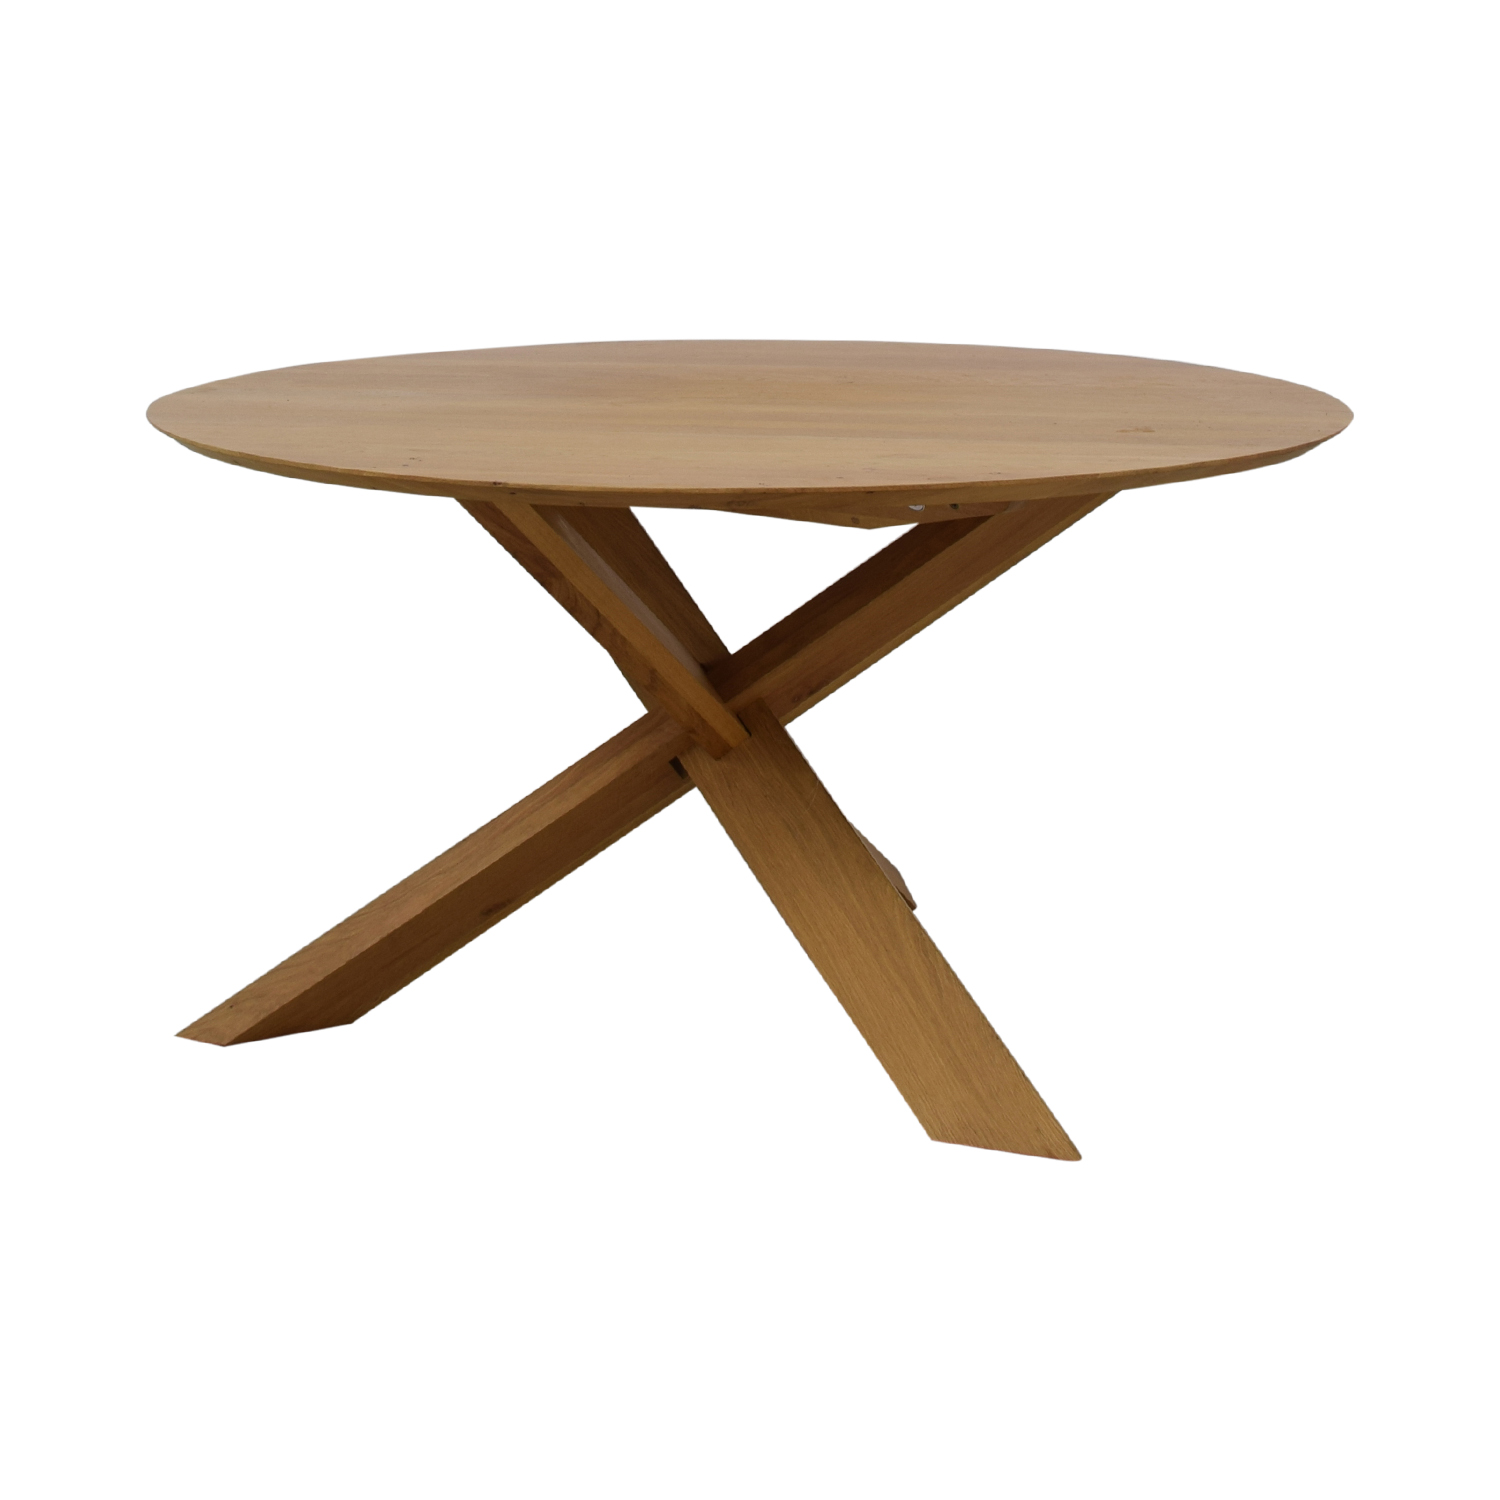 Ethnicraft Ethnicraft Circle Dining Table nyc